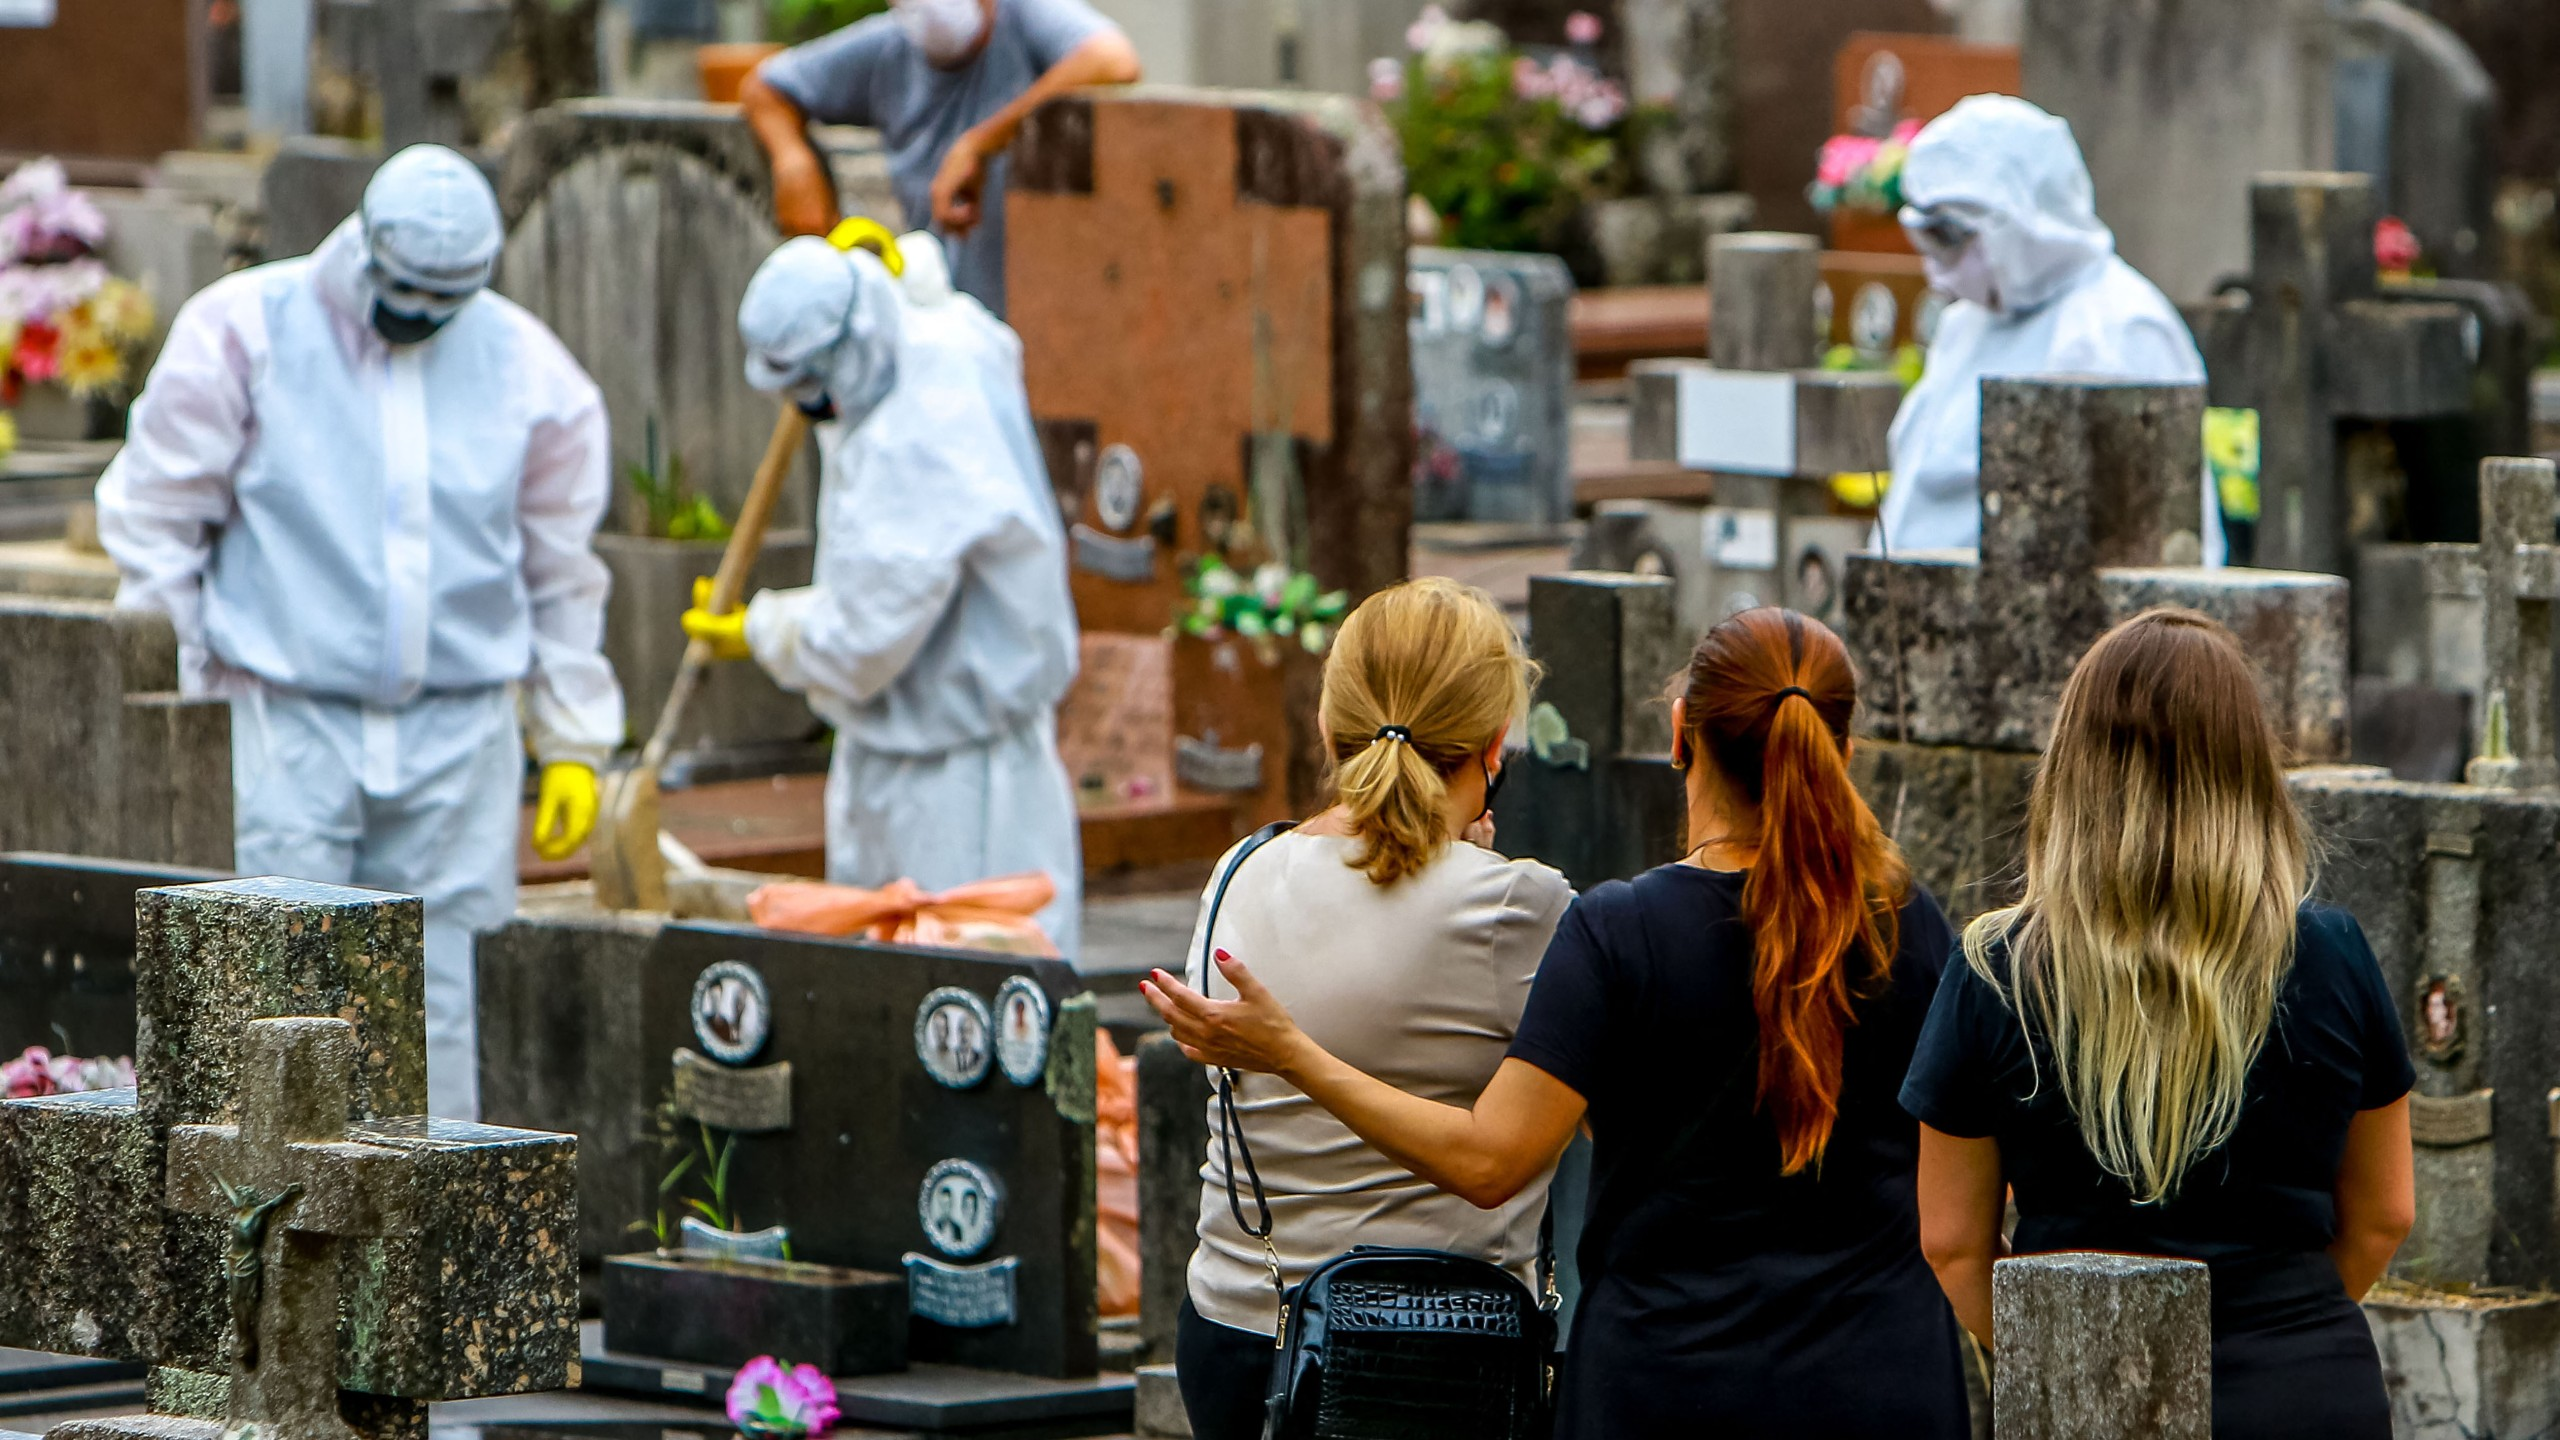 Relatives of a victim of COVID-19 watch as cemetery workers clean graves after a burial at the Sao Joao municipal cemetery in Porto Alegre, Brazil, on March 26, 2021. Brazil surpassed 100,000 new COVID-19 cases in one day that Thursday, adding another grim record in a country where the pandemic has killed more than 300,000 people. (SILVIO AVILA / AFP via Getty Images)